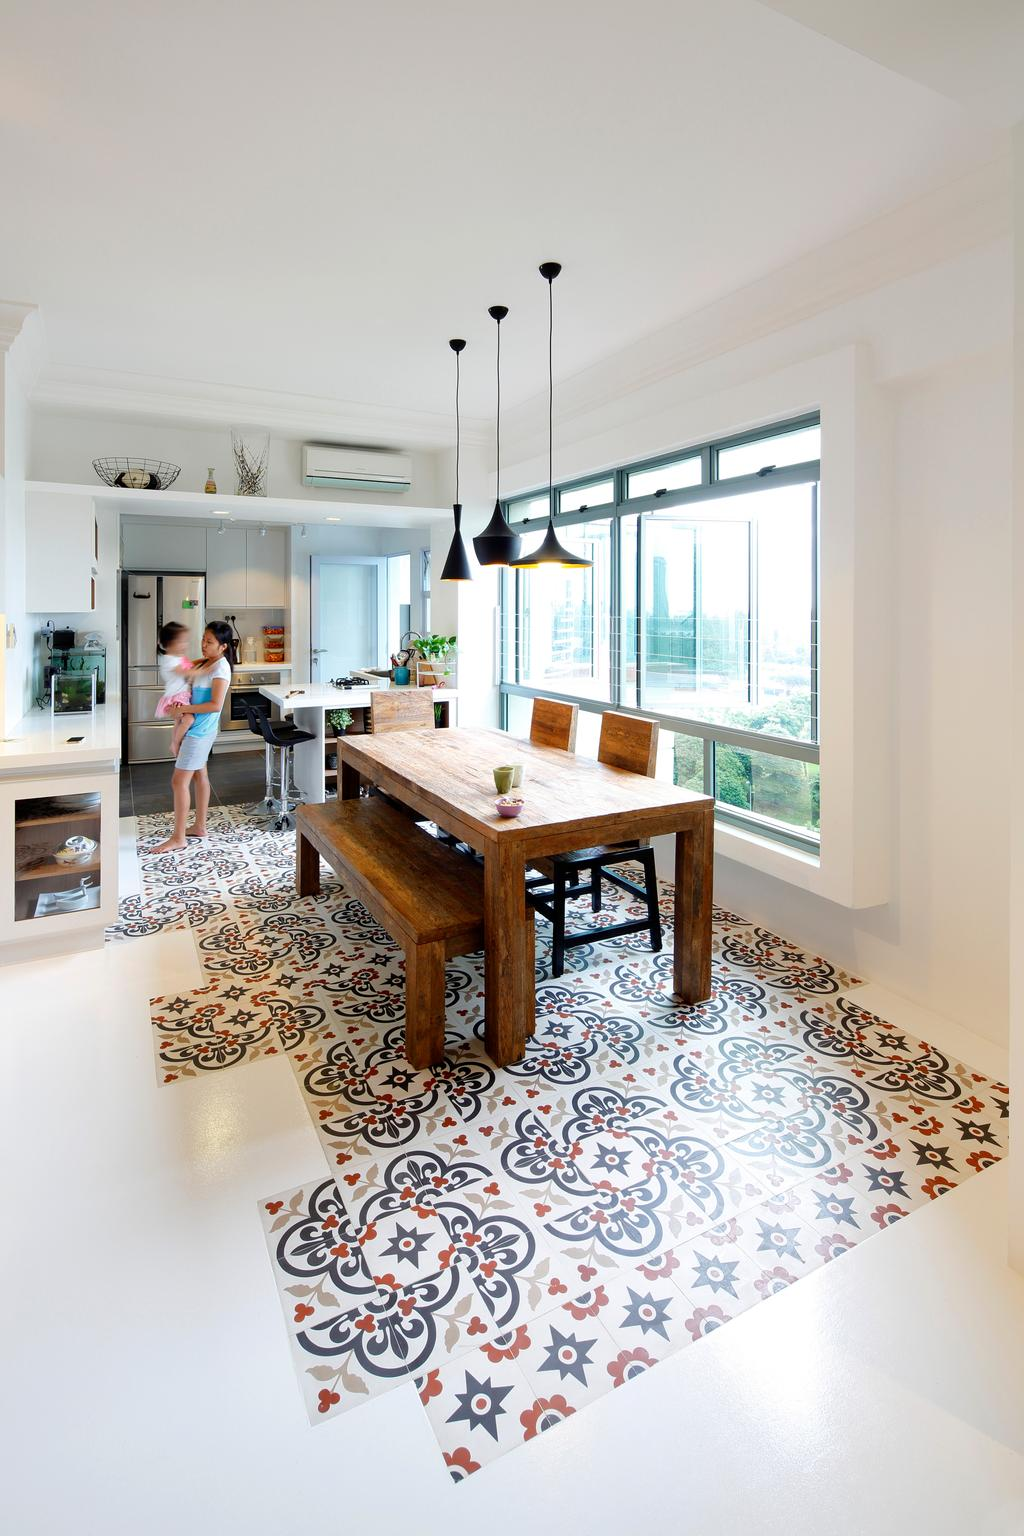 Contemporary, HDB, Dining Room, Artists Home & Studio, Architect, Lekker Architects, Pendant Lighting, Designed Tiles, Wooden Table, Wooden Bench, Dining Table, Dining Bench, Human, People, Person, Chair, Furniture, Table, Indoors, Interior Design, Room